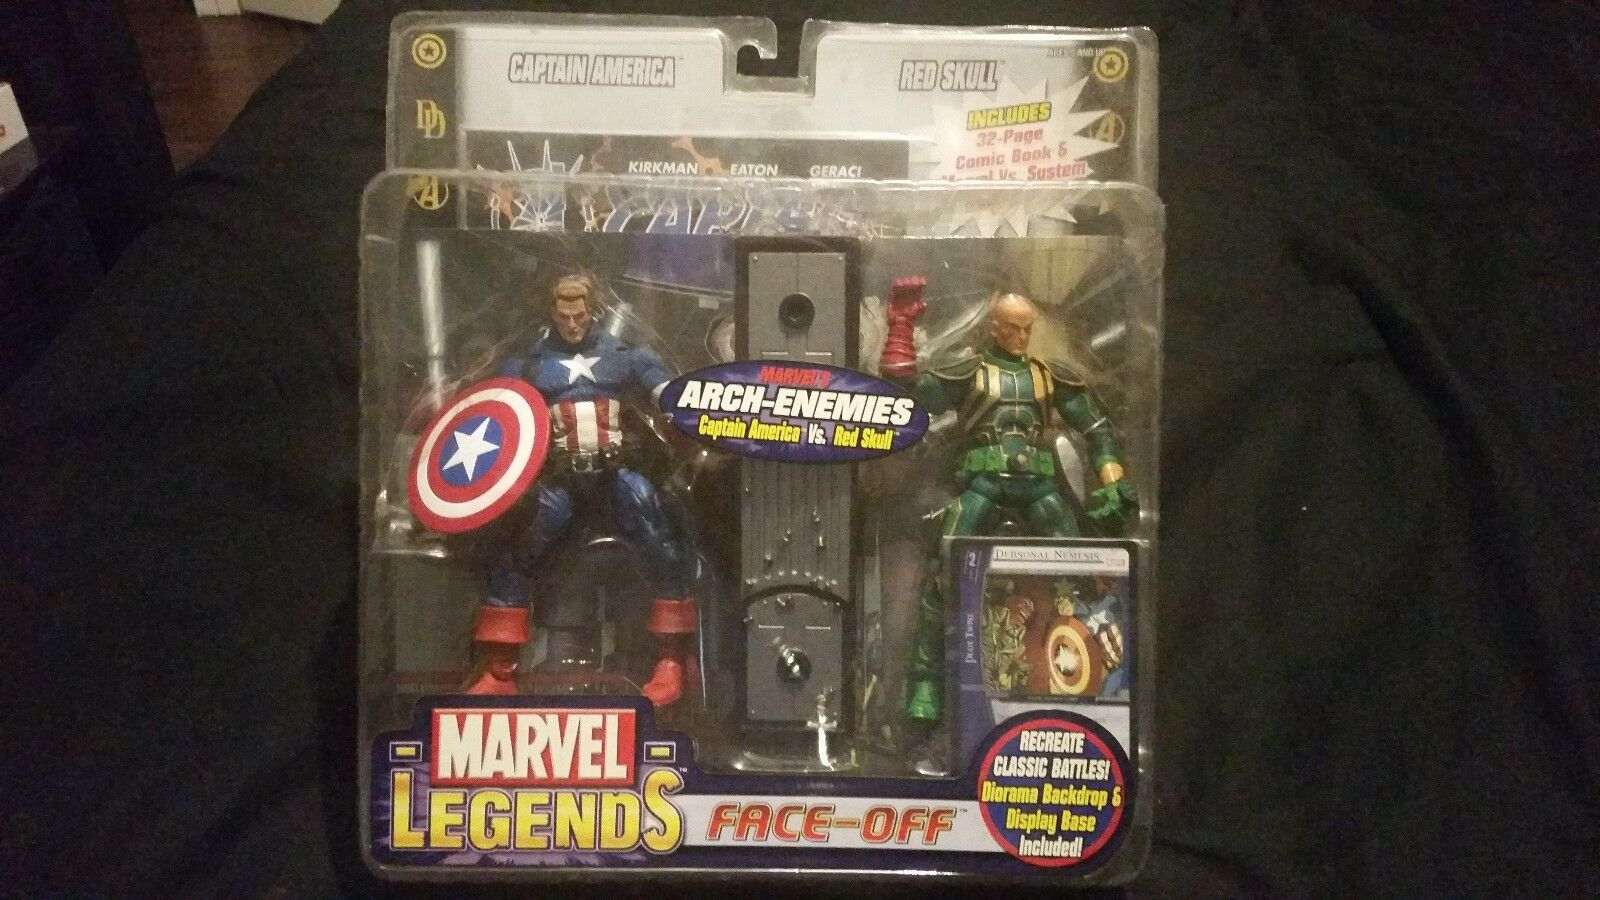 Marvel - legenden face-off captain america vs. rot skull - variante arch-enemies